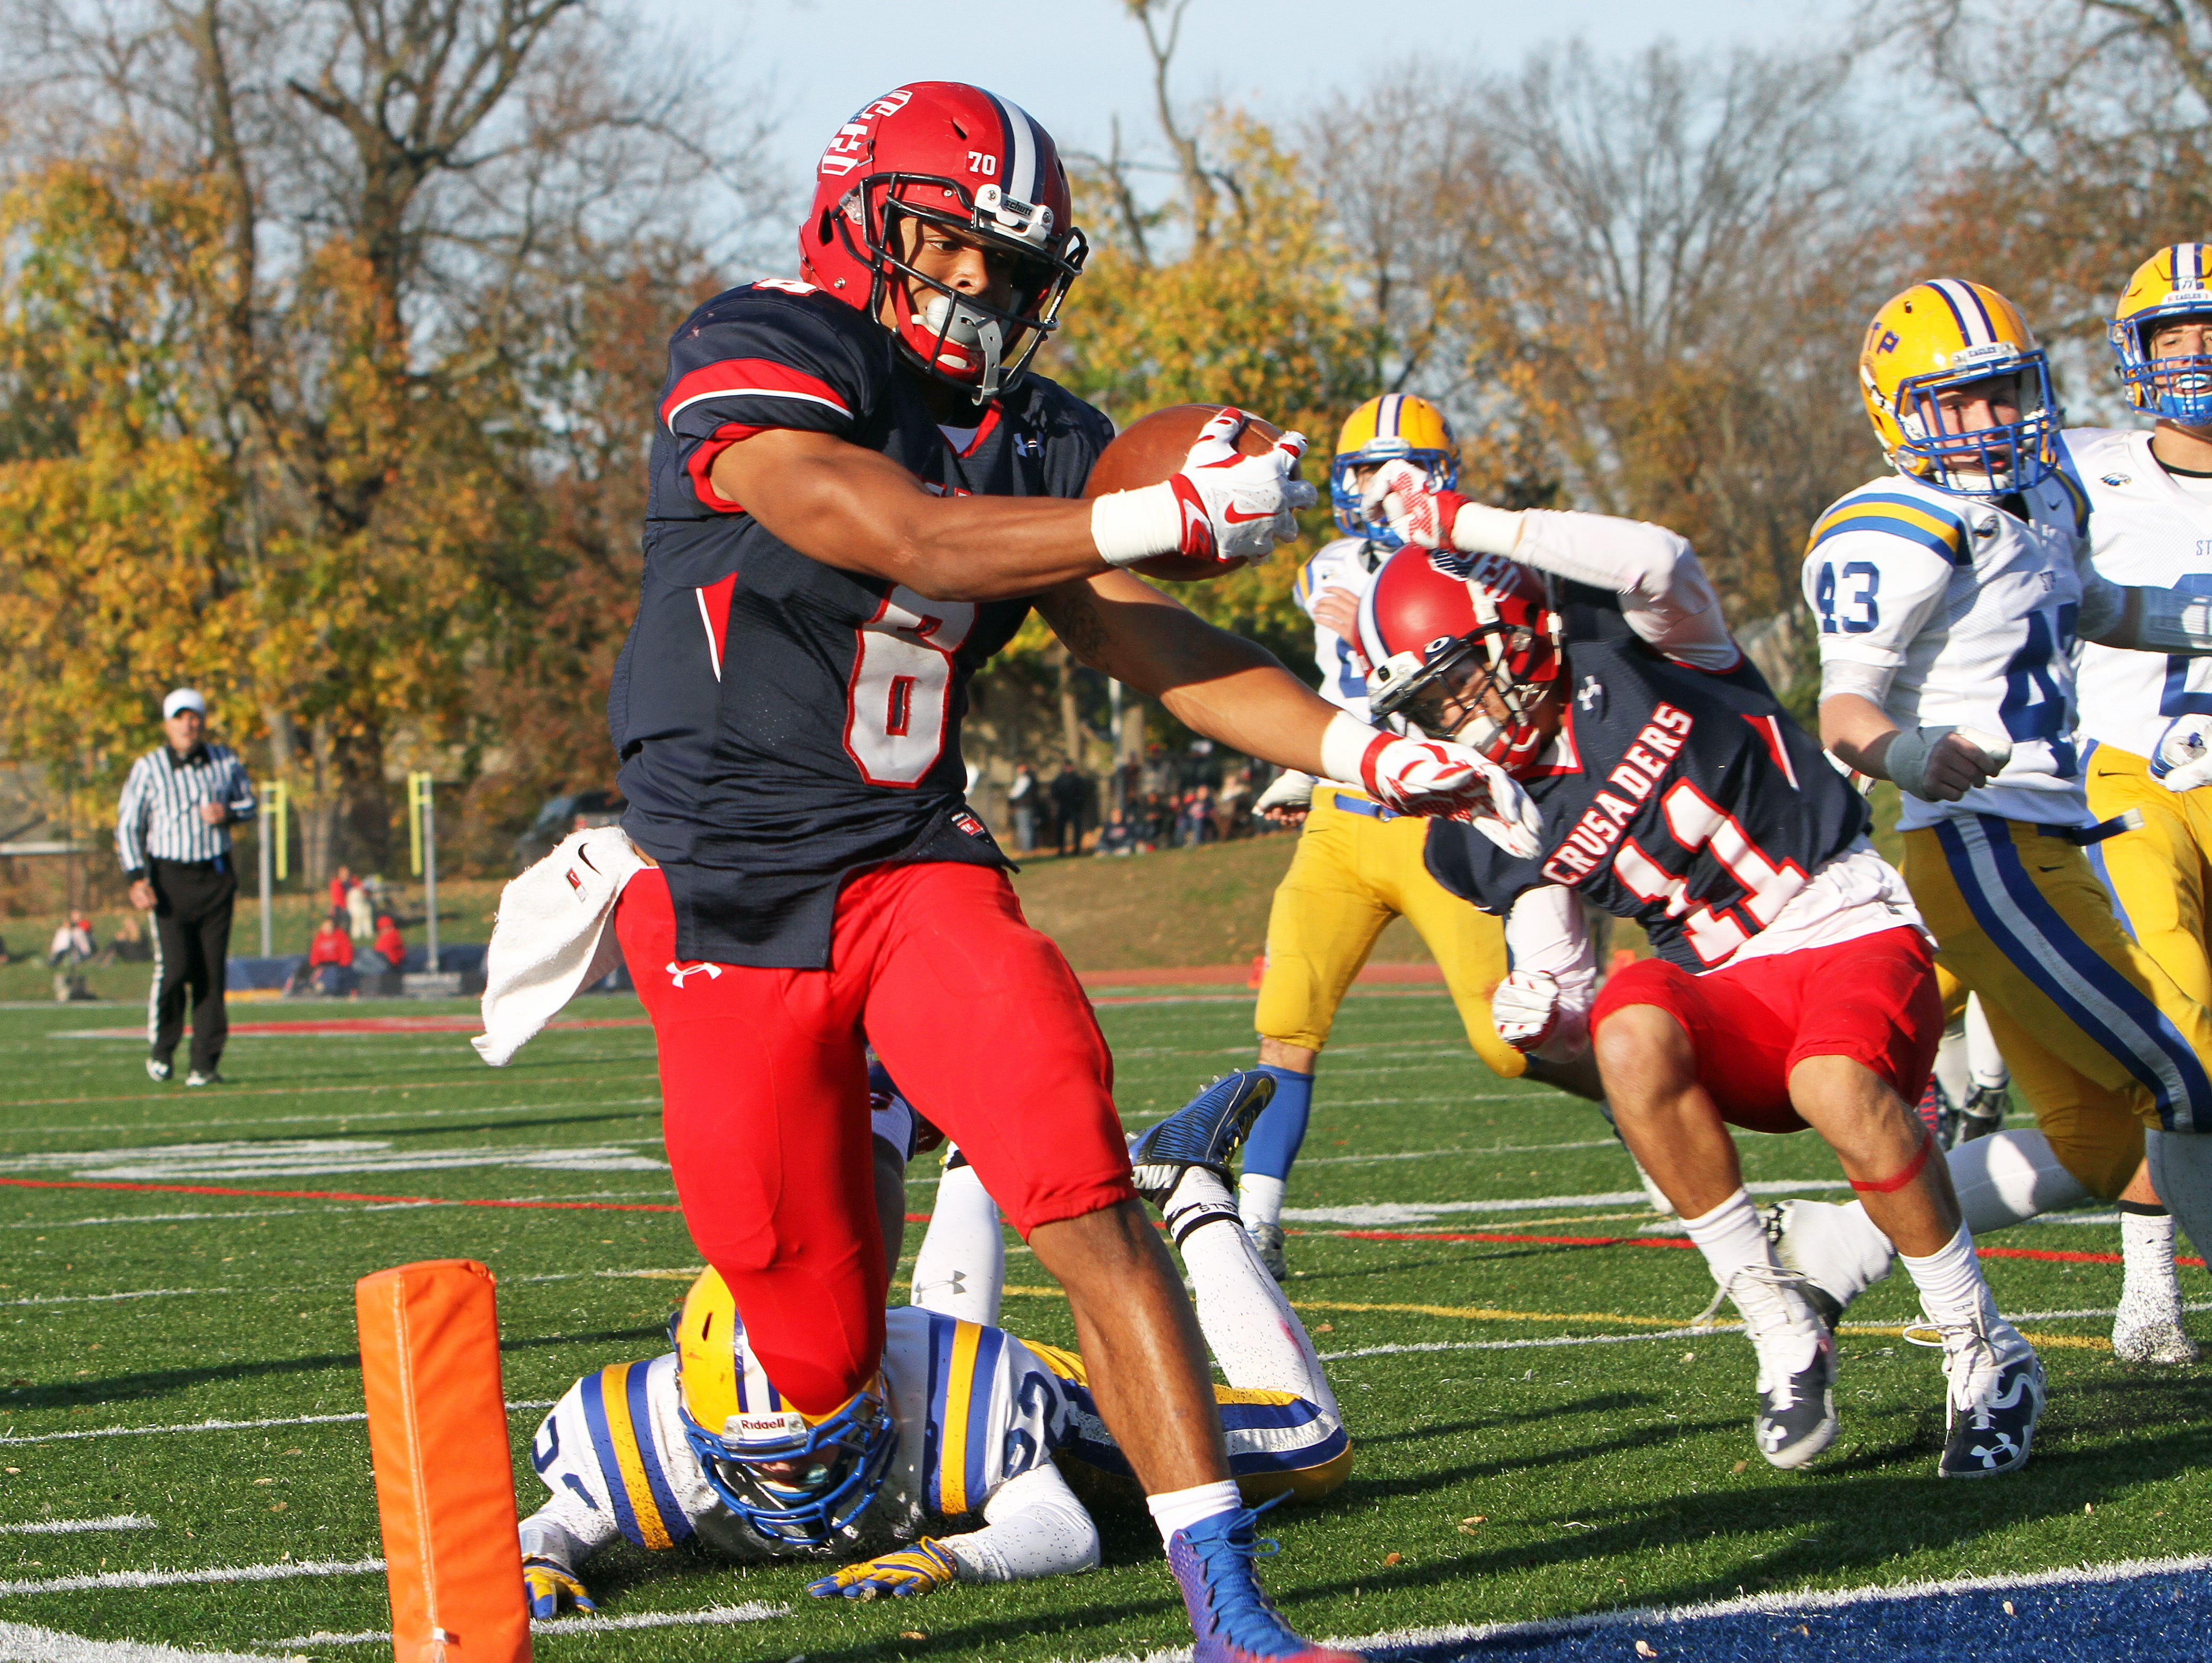 Stepinac's Terrell Morrison (6) breaks a few Saint Peter's tackles as he runs into the end zone for a 3rd quarter touchdown during the NYCHSFL semifinals at Archbishop Stepinac High School in White Plains Nov 15, 2015. Stepinac won the game 49-7.